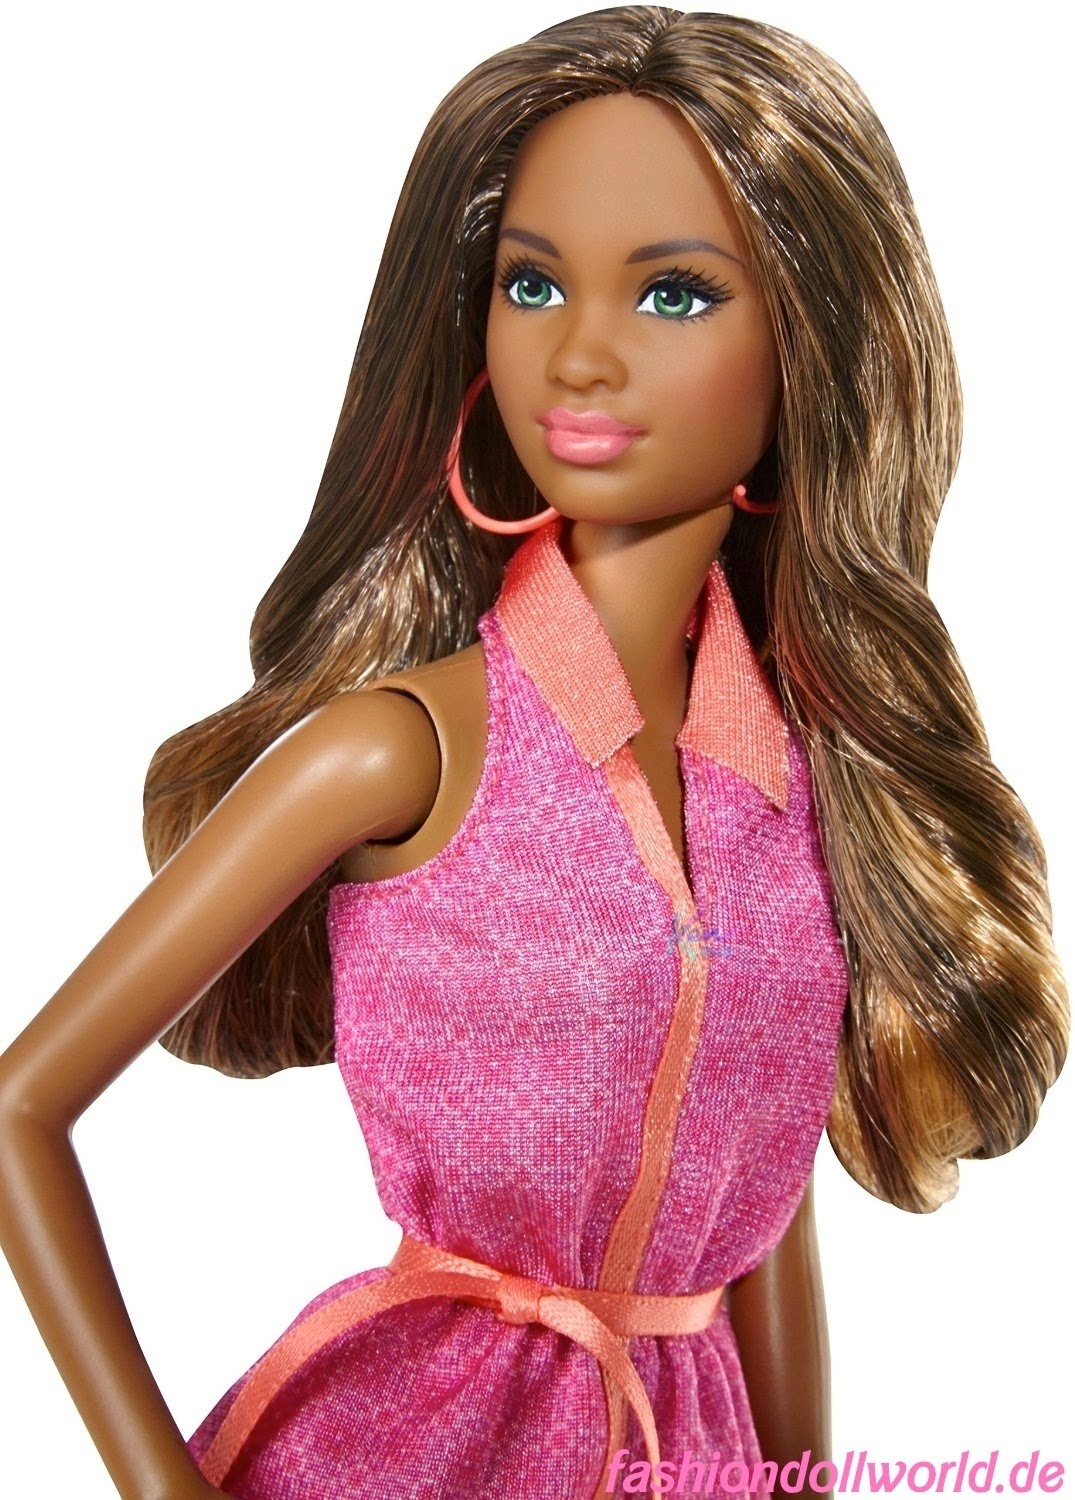 Girl With Glasses Wallpaper Barbie Fashionistas 2015 Barbie Girl Collectible